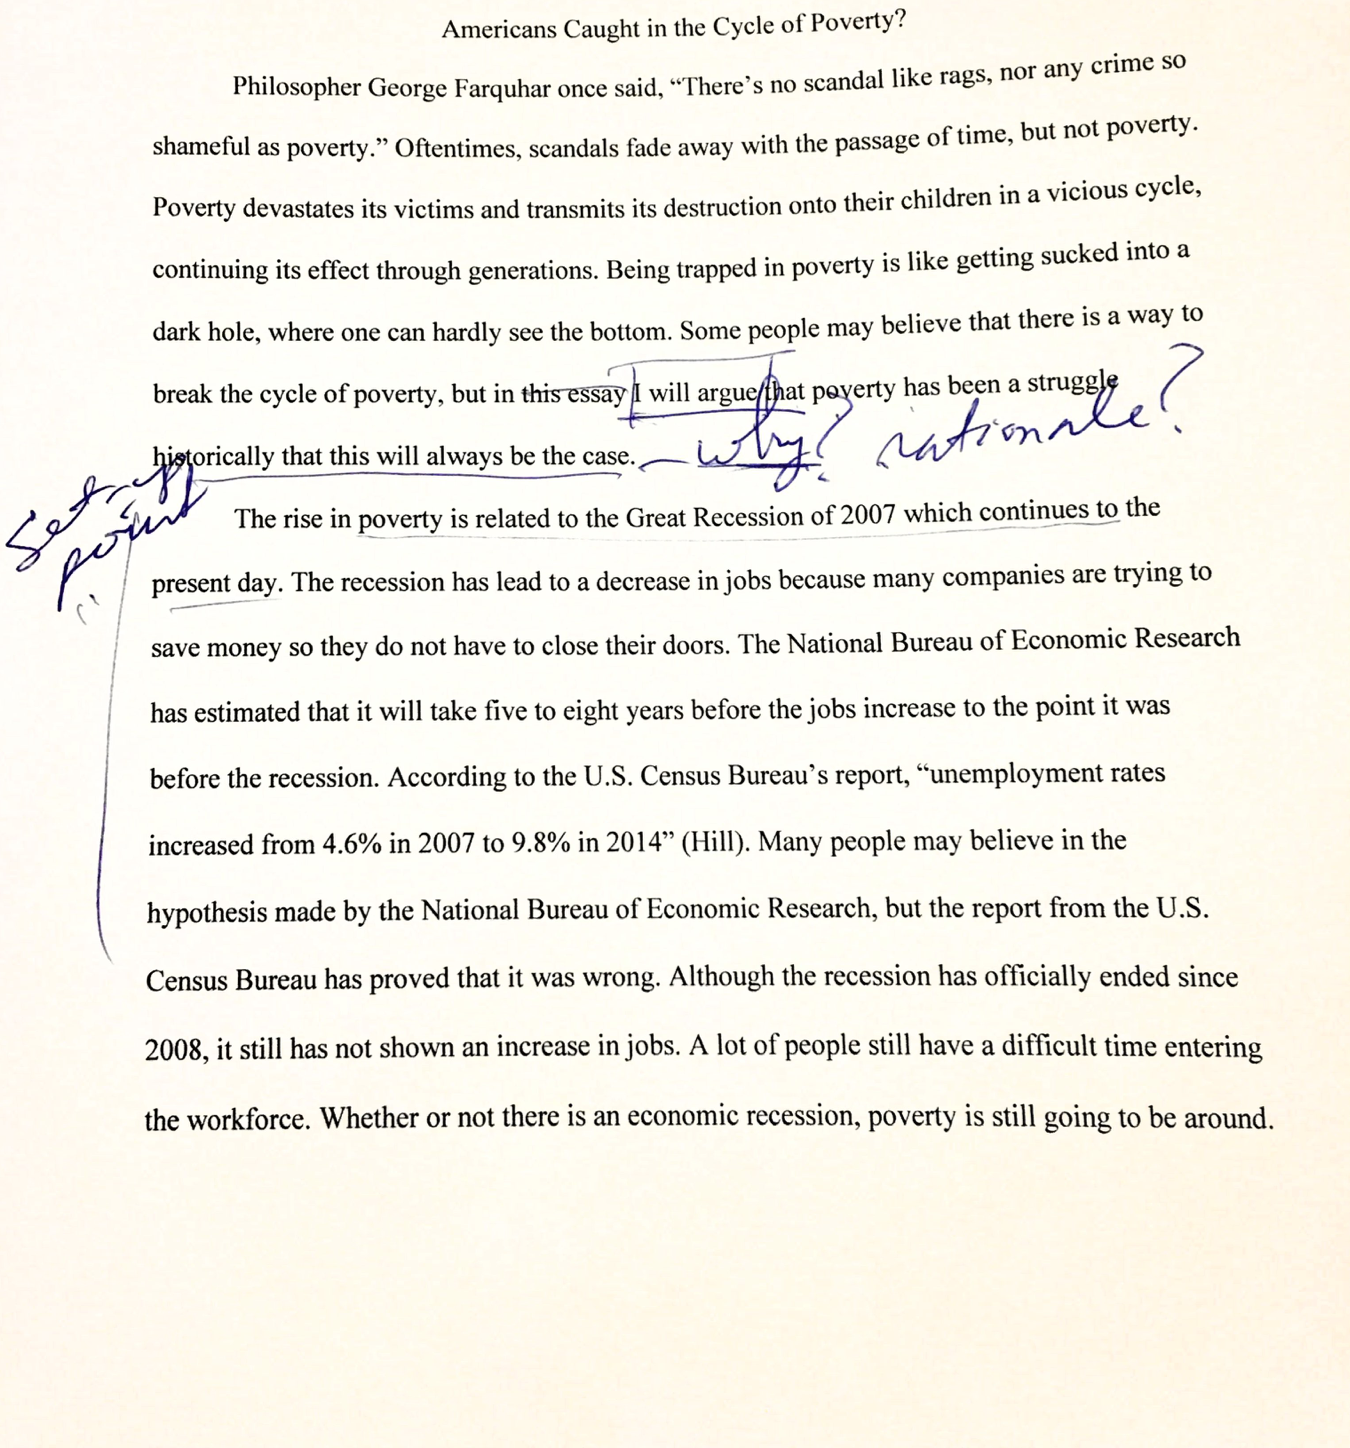 013 Essay Example What Is Claim In An Argumentative Can Someone Please Help Me Rewrite Or Fix Those Mistakes On My How To Write For Imposing A Apex Effective Brainly Full